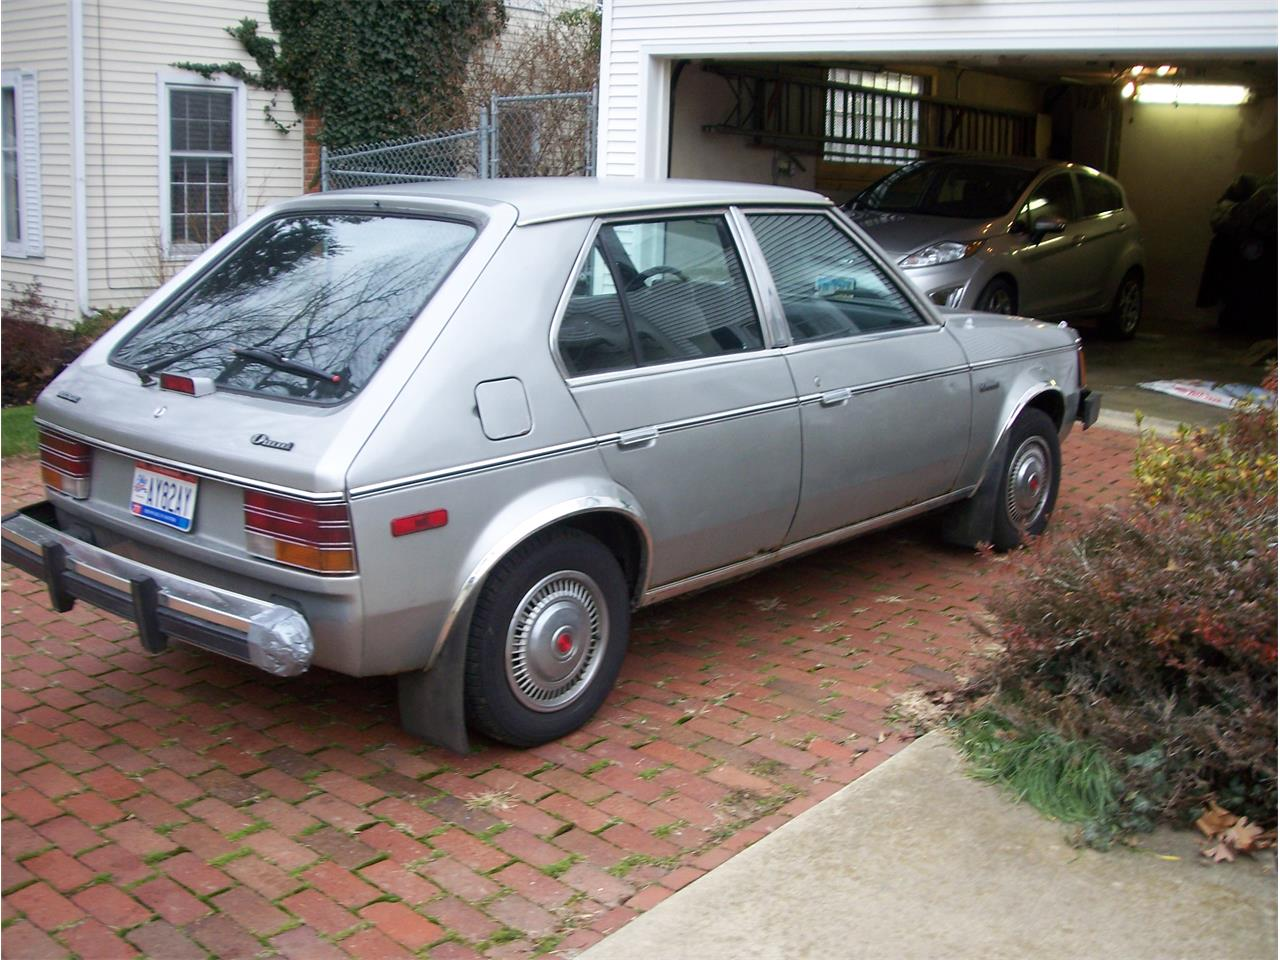 Large Picture of '79 Dodge Omni located in Ohio Offered by a Private Seller - EEQJ